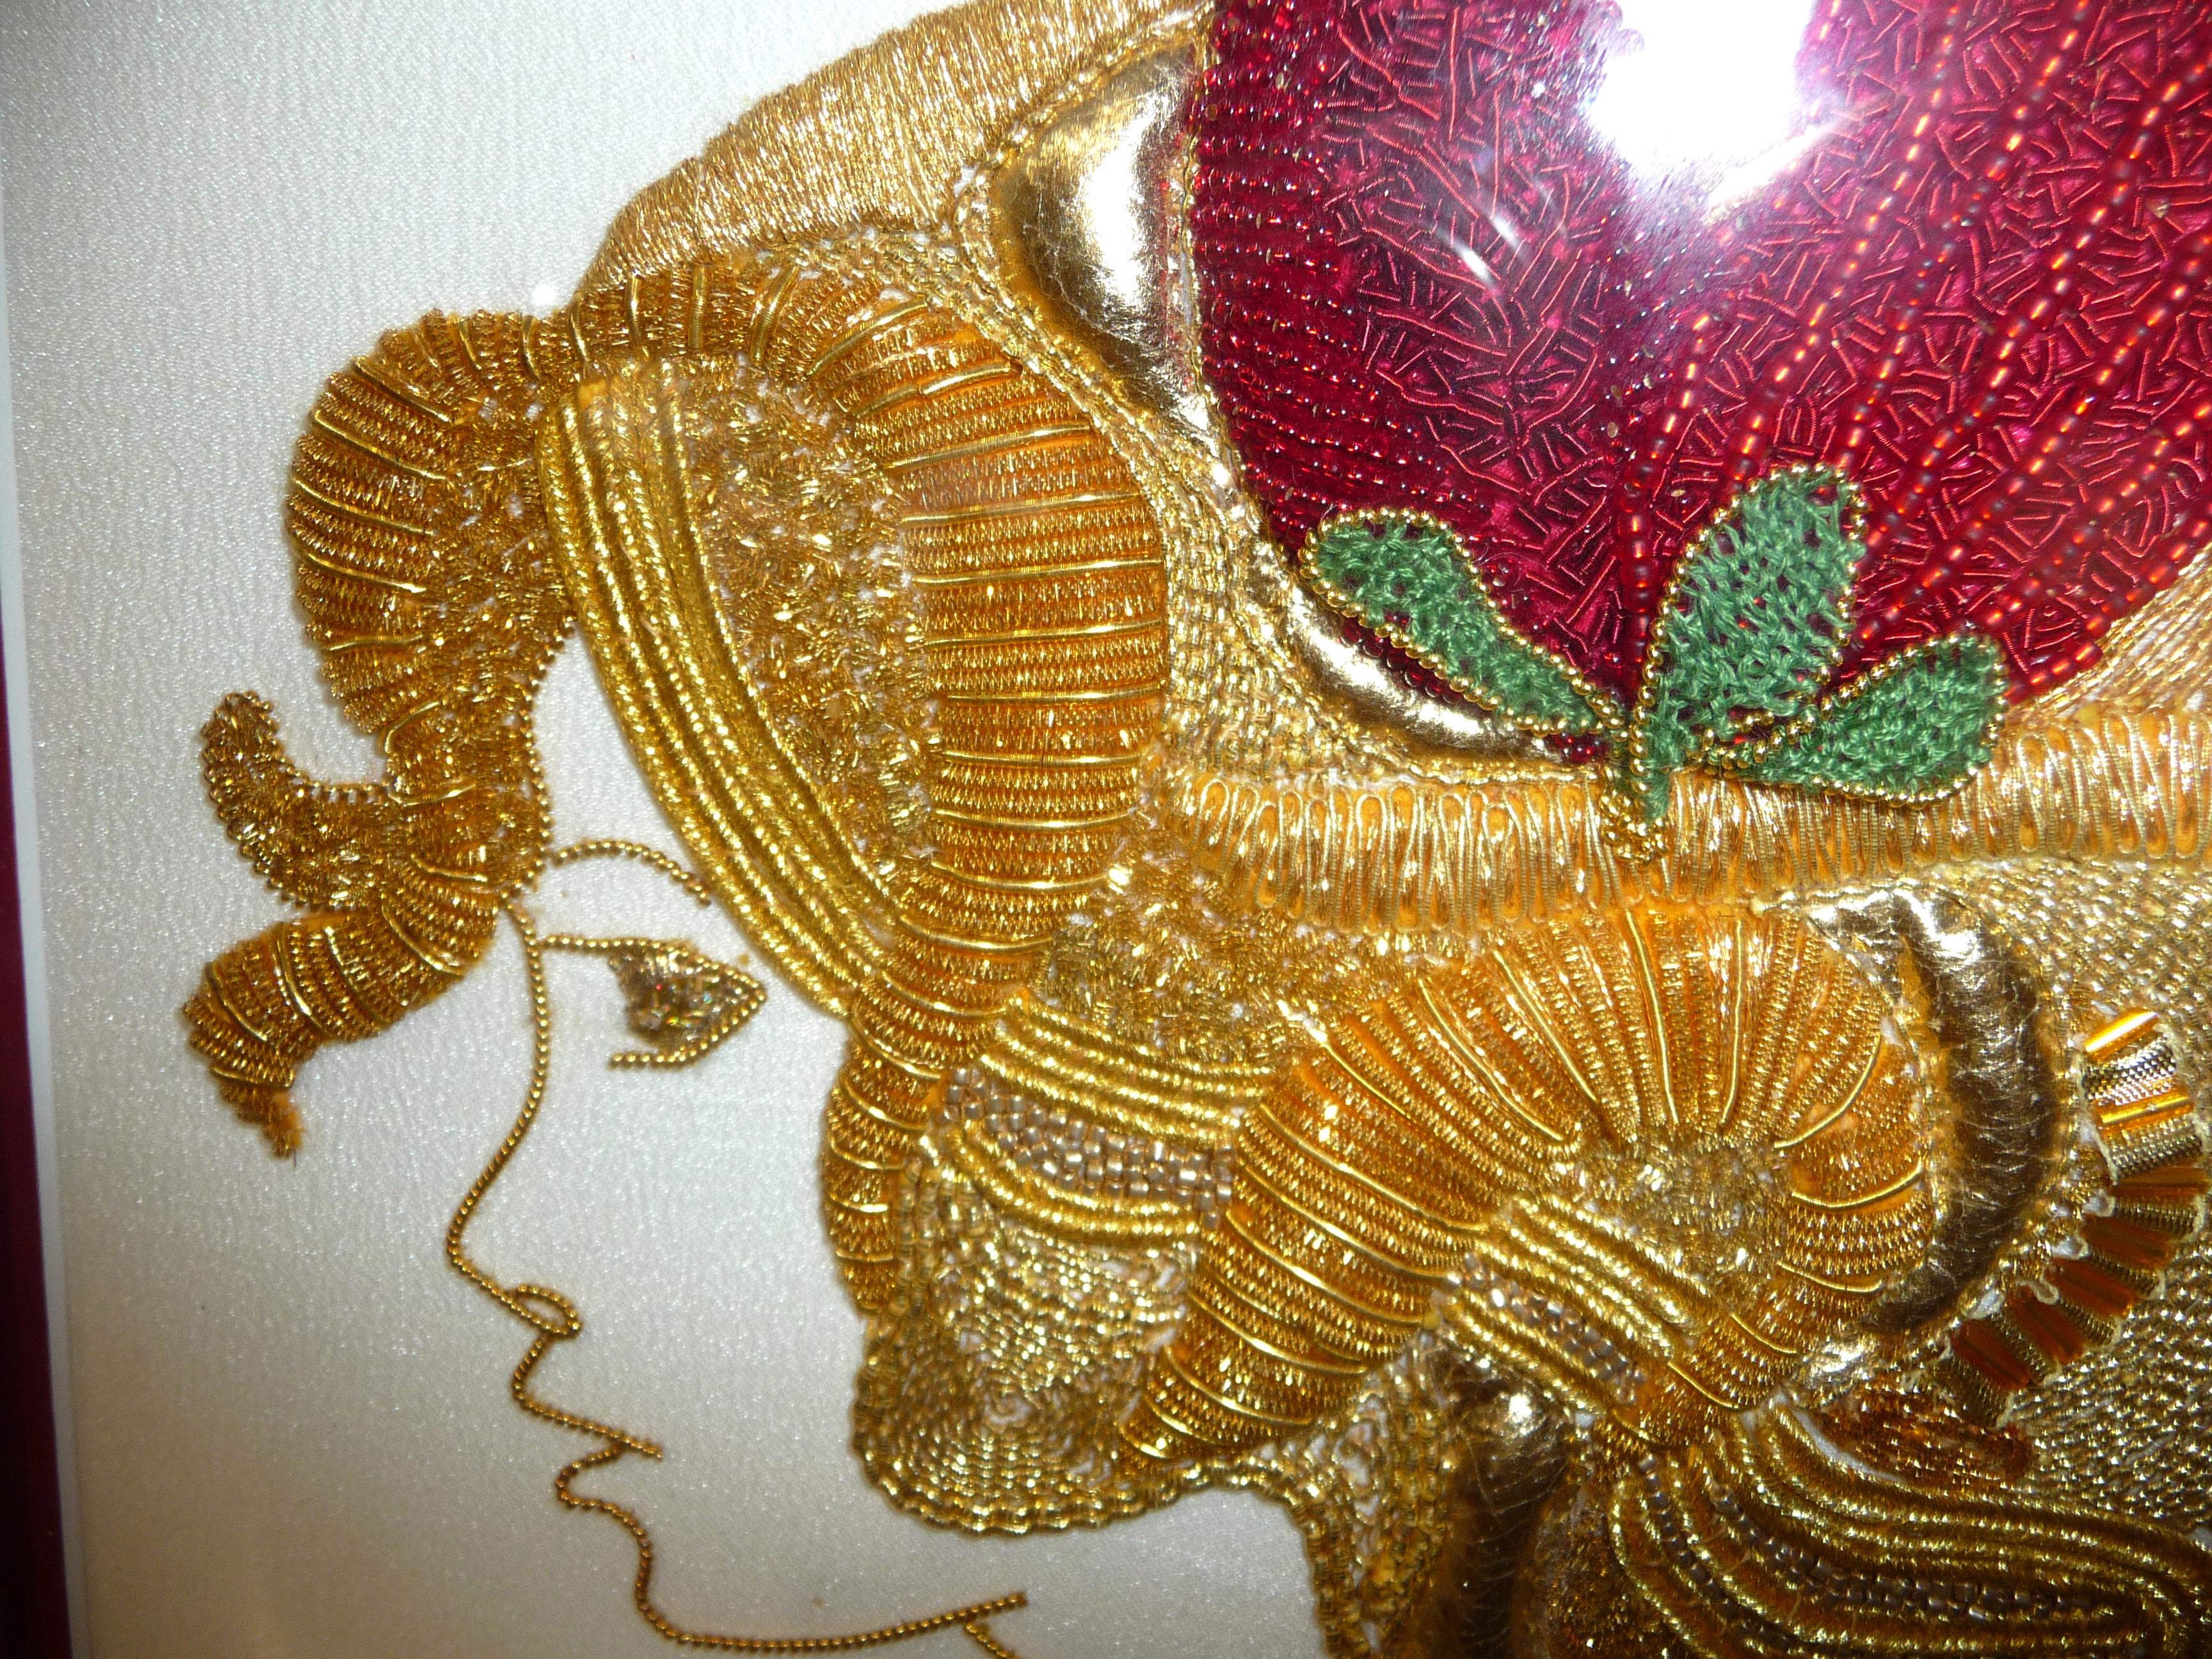 GOLD LADY(detail) by Dianne Thomas, WINNER OF JOYCE STUBBS MEMORIAL PRIZE FOR TRADITIONAL EMBROIDERY, goldwork